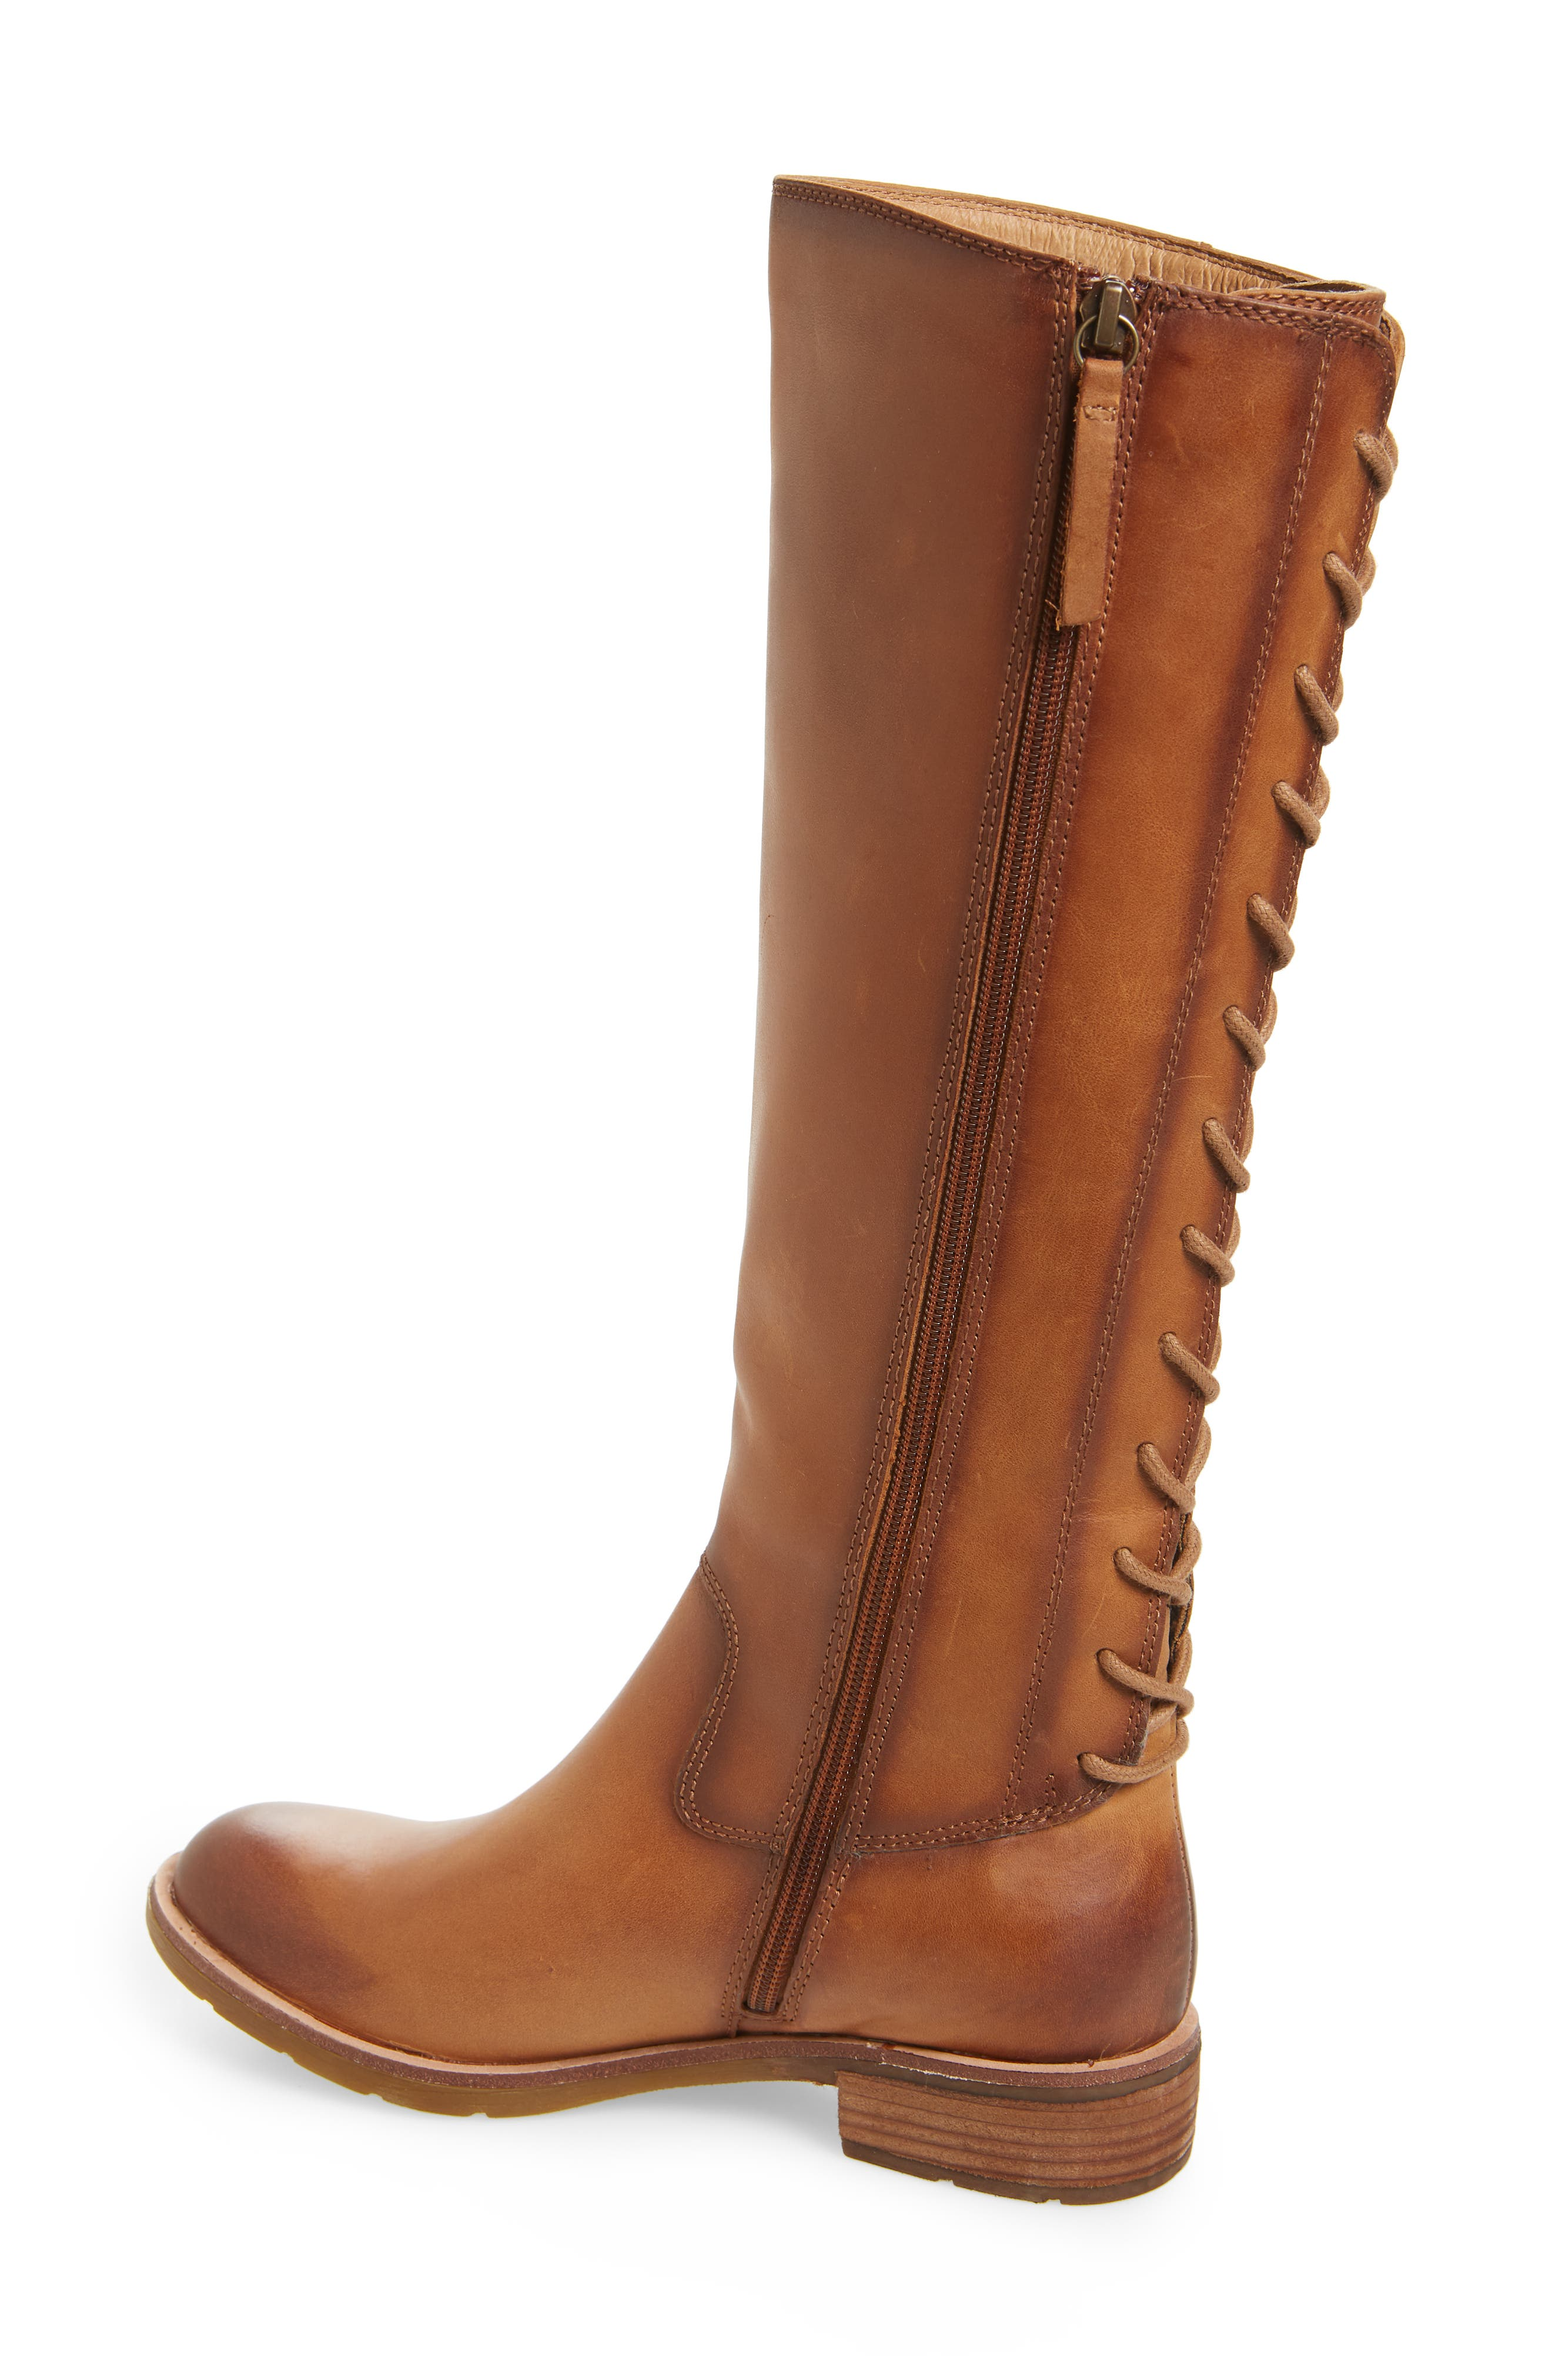 Sharnell II Knee High Boot,                             Alternate thumbnail 2, color,                             BISCUIT LEATHER